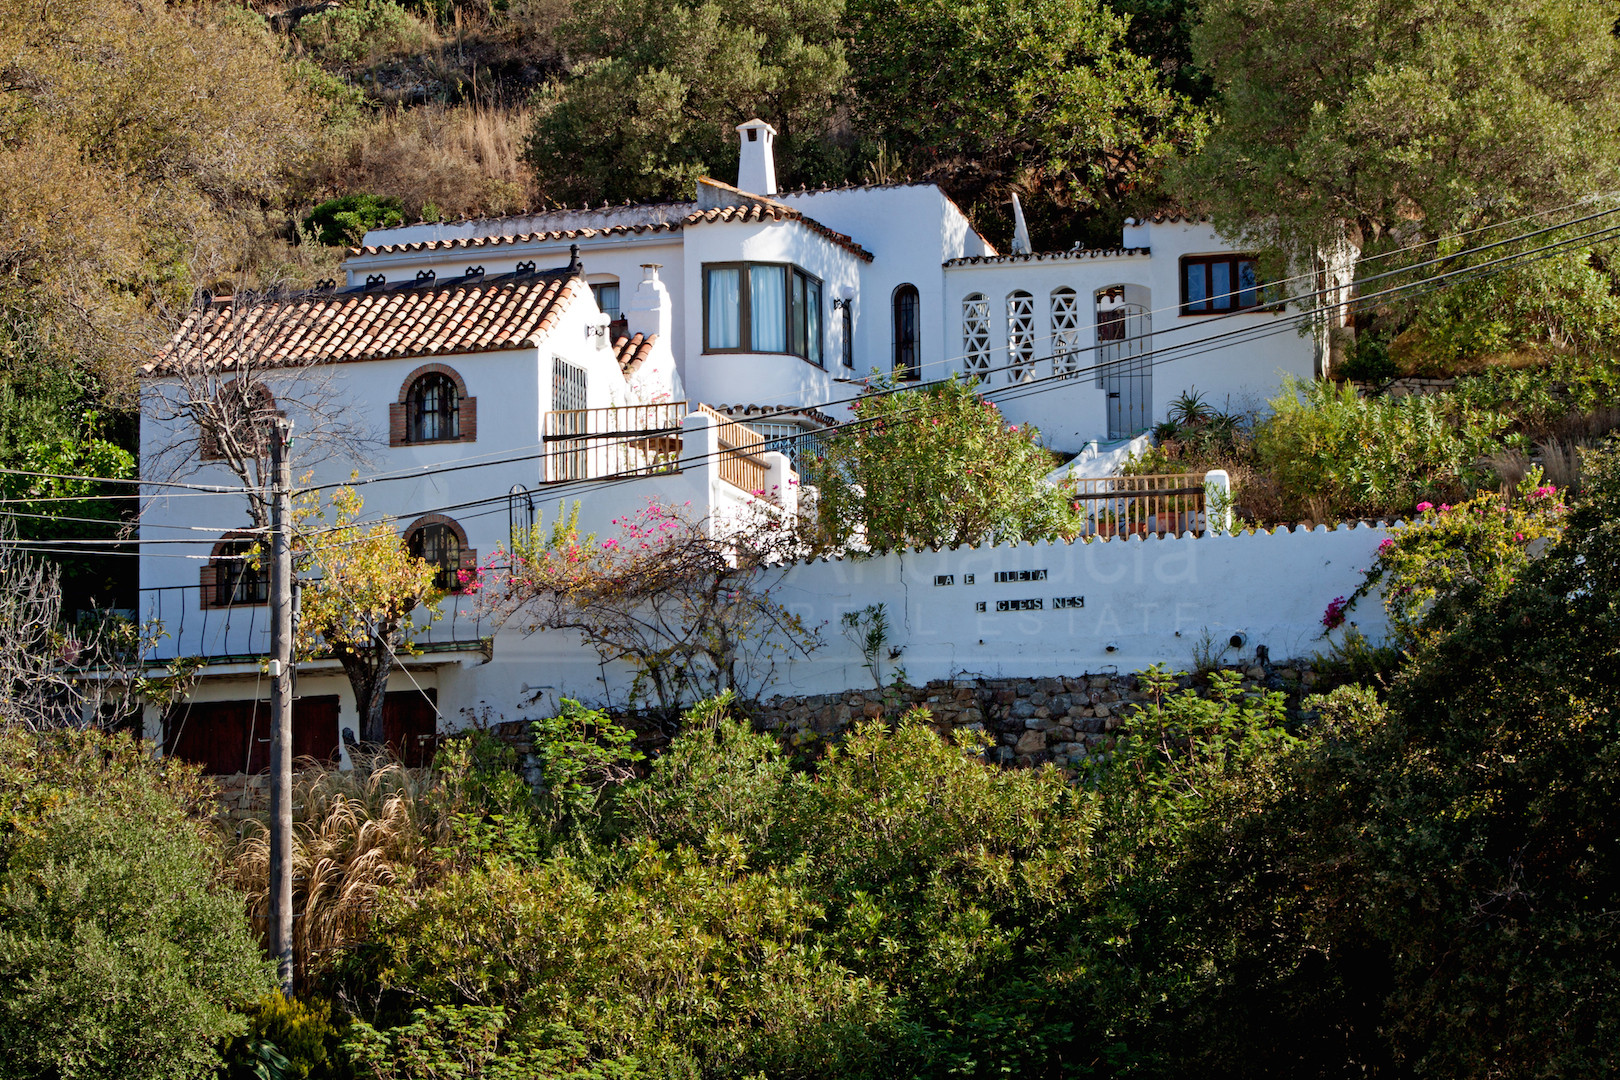 Delightful 3-bed country house with separate 1-bed guest apartment for sale in Casares